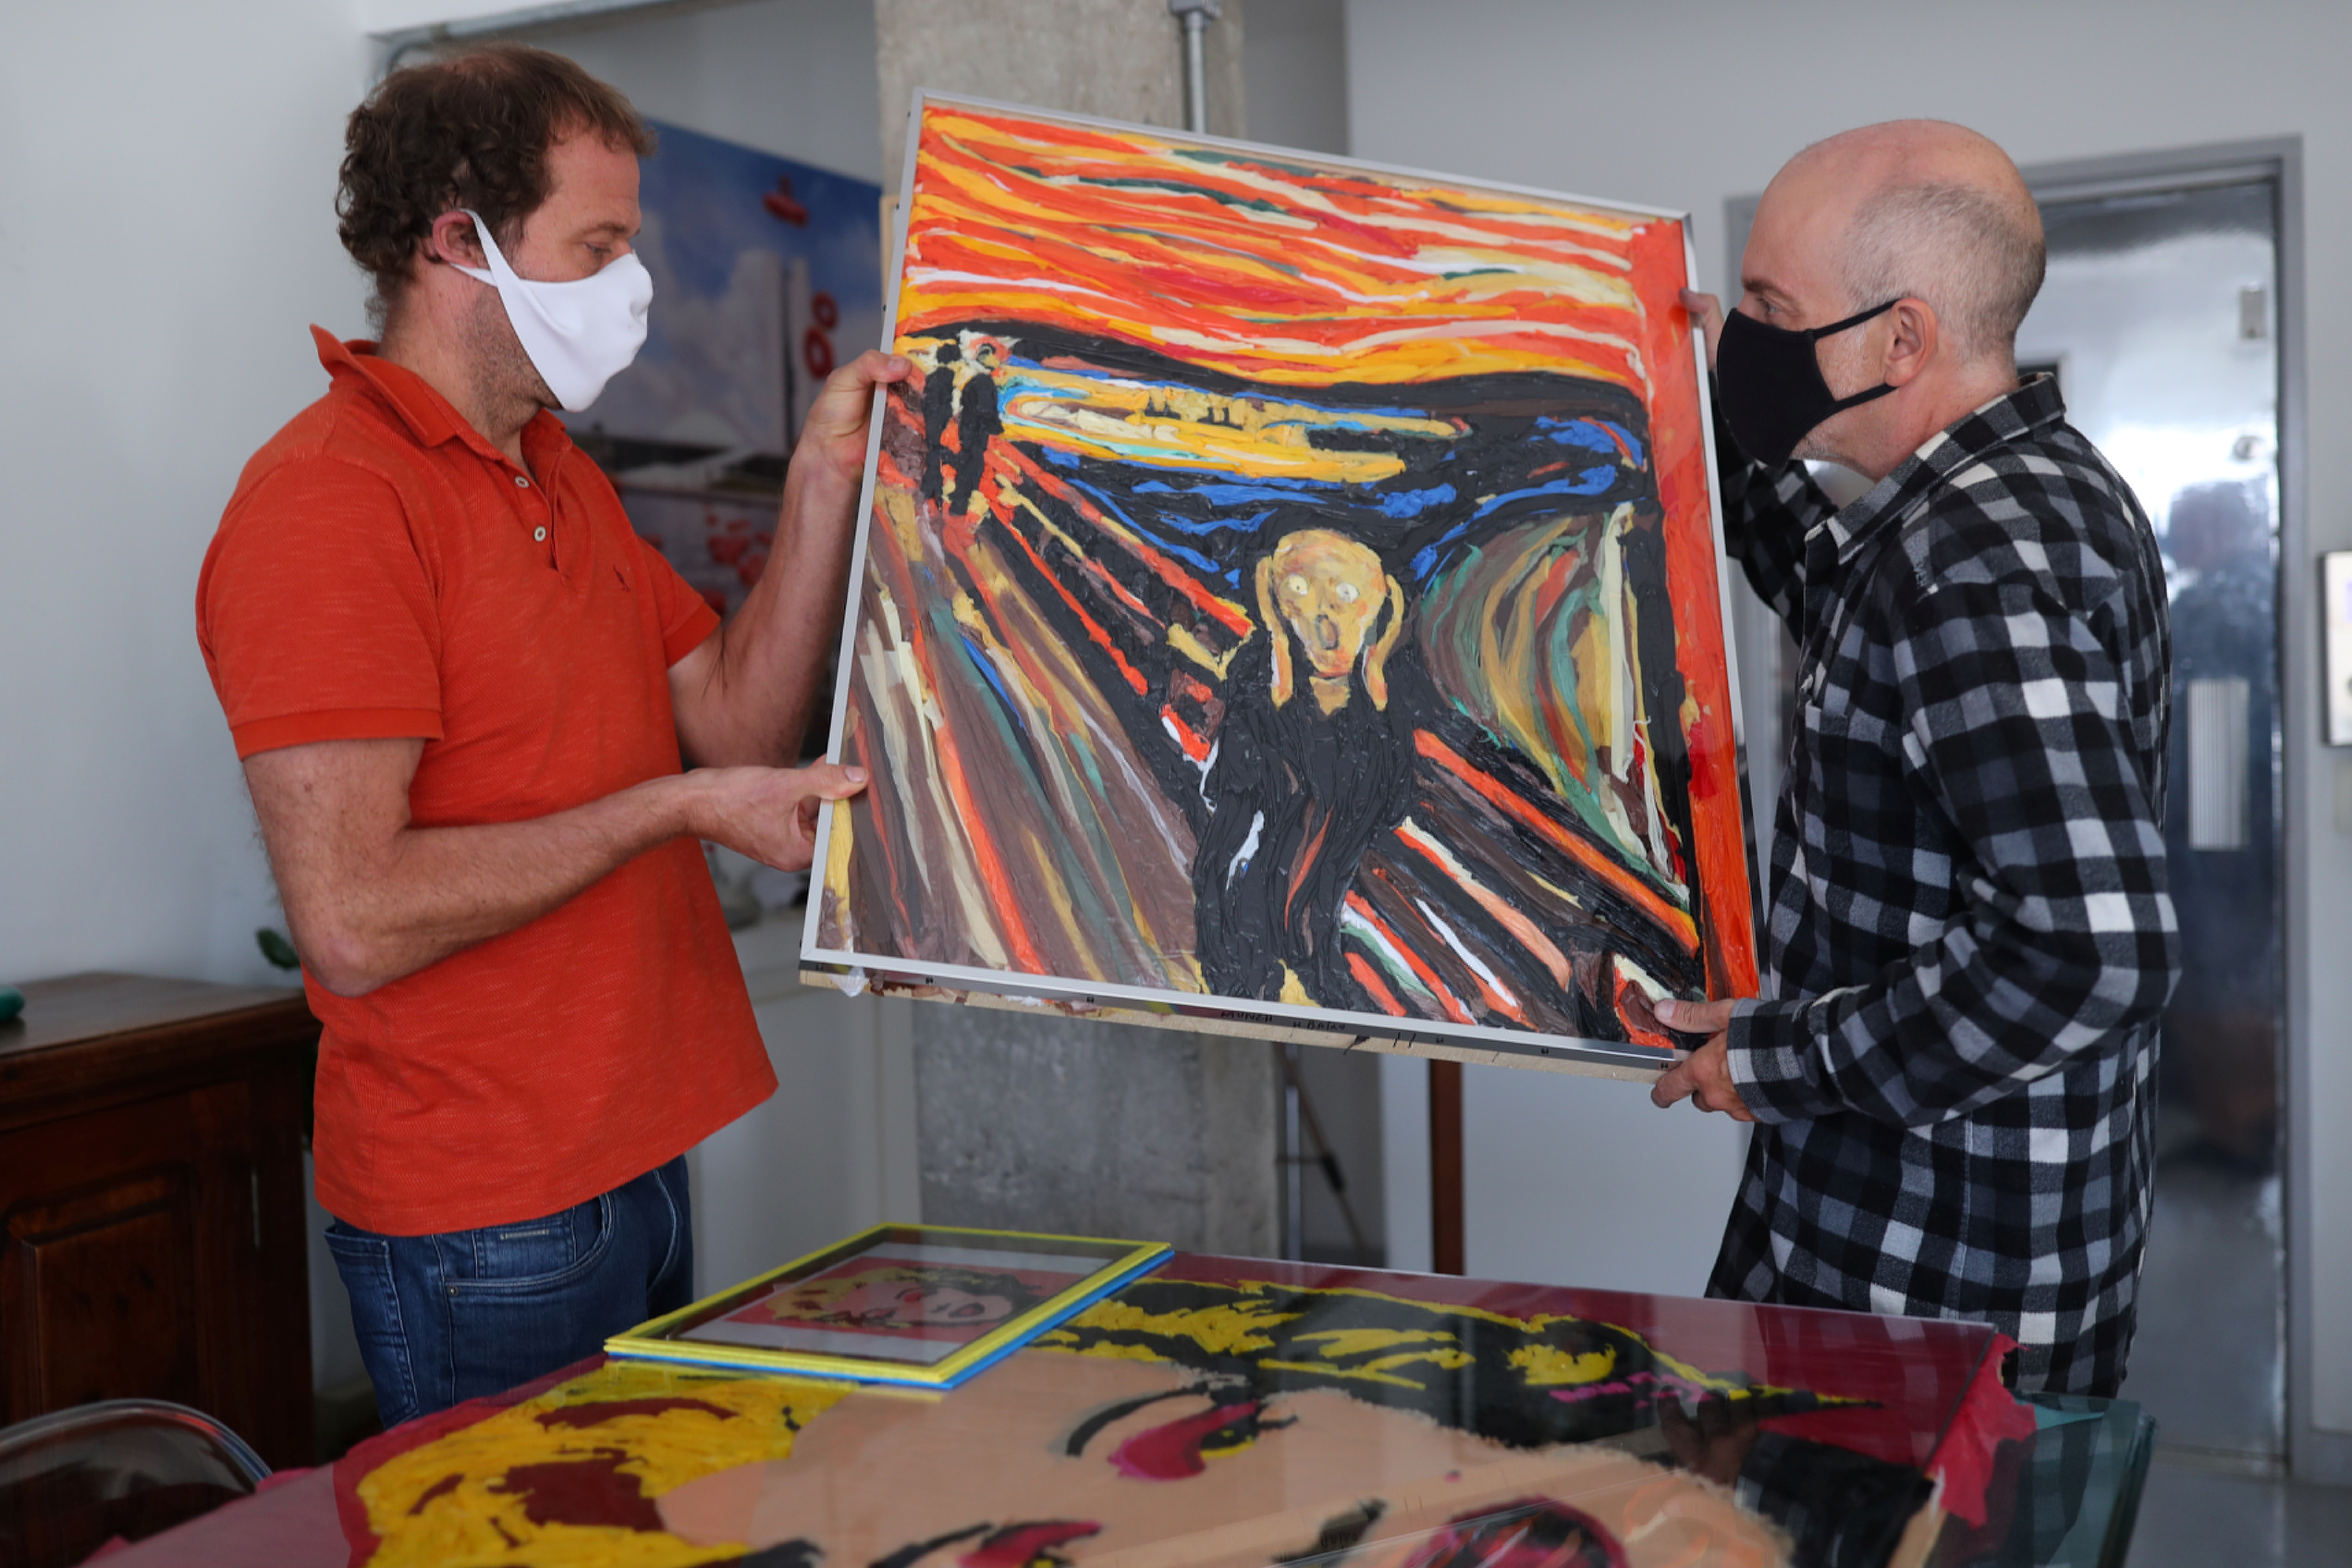 Brazilian artist Eduardo Srur and his assistant Rogerio Canella hold the recreation of the painting 'The Scream' by Edvard Munch made with plastic as part of his new series 'Plastic Nature' in his studio in Sao Paulo, Brazil May 27, 2021. Picture taken May 27, 2021.  REUTERS/Amanda Perobelli